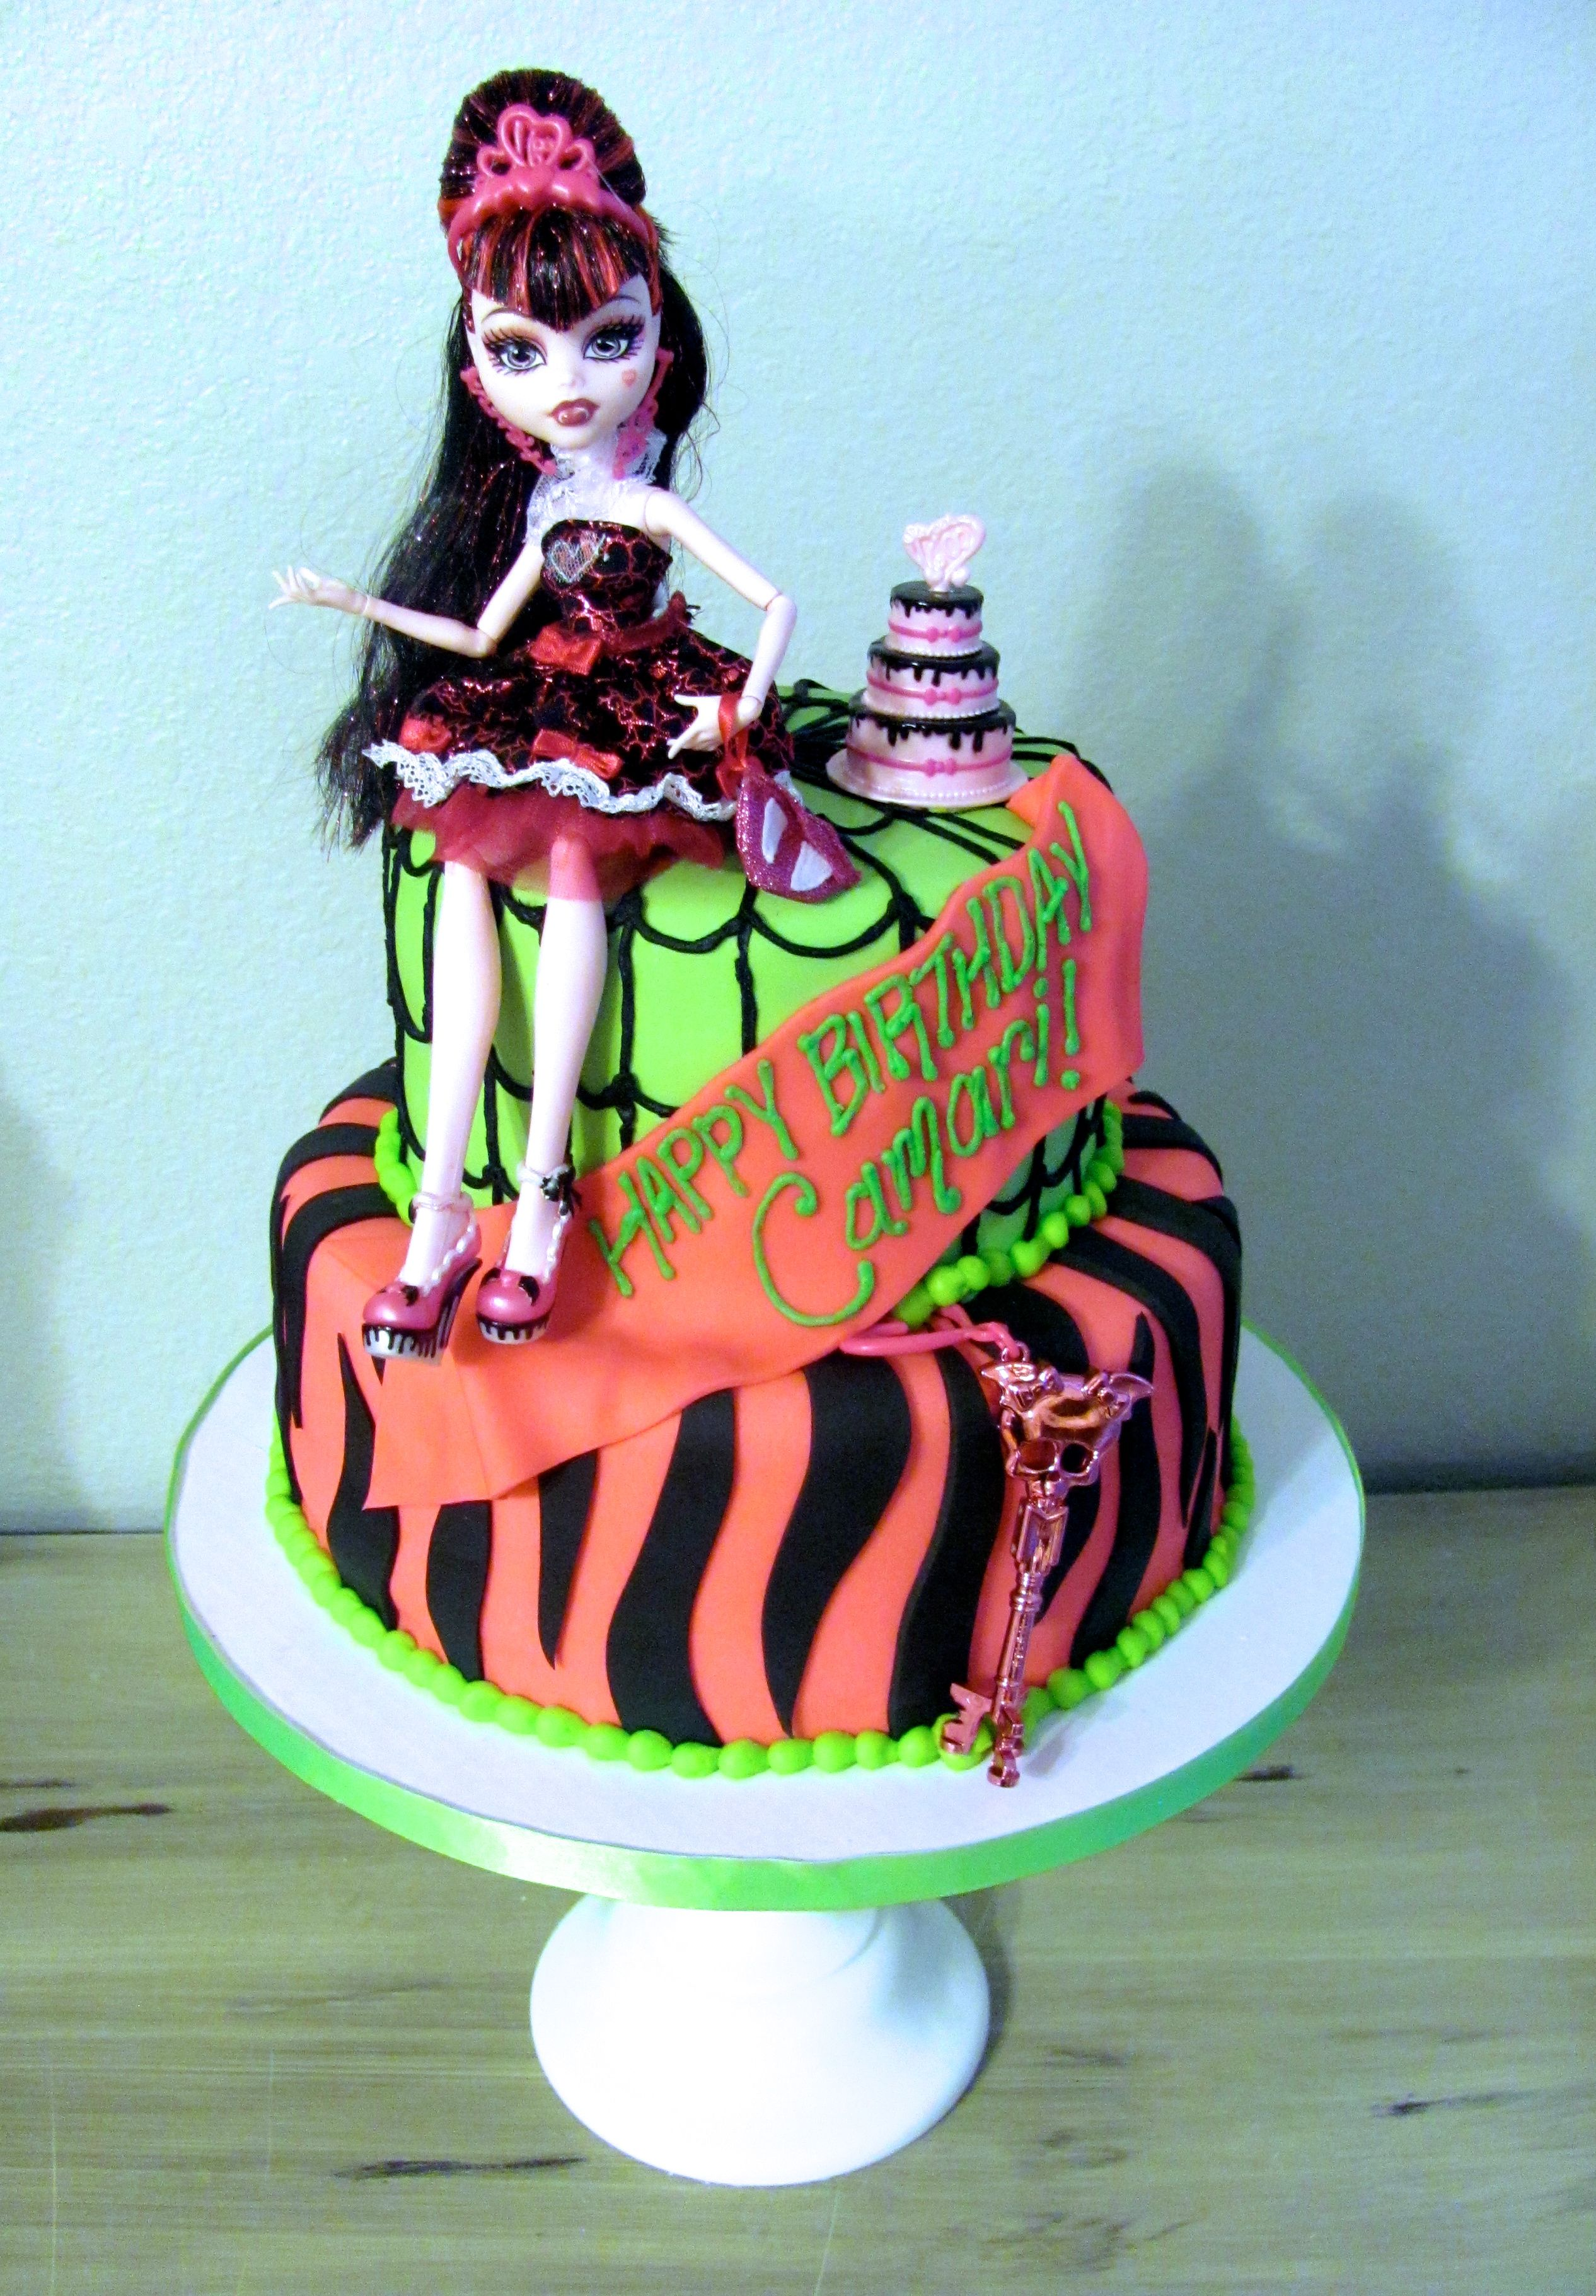 monster high cakes Monster High Birthday Cake cakes Pinterest